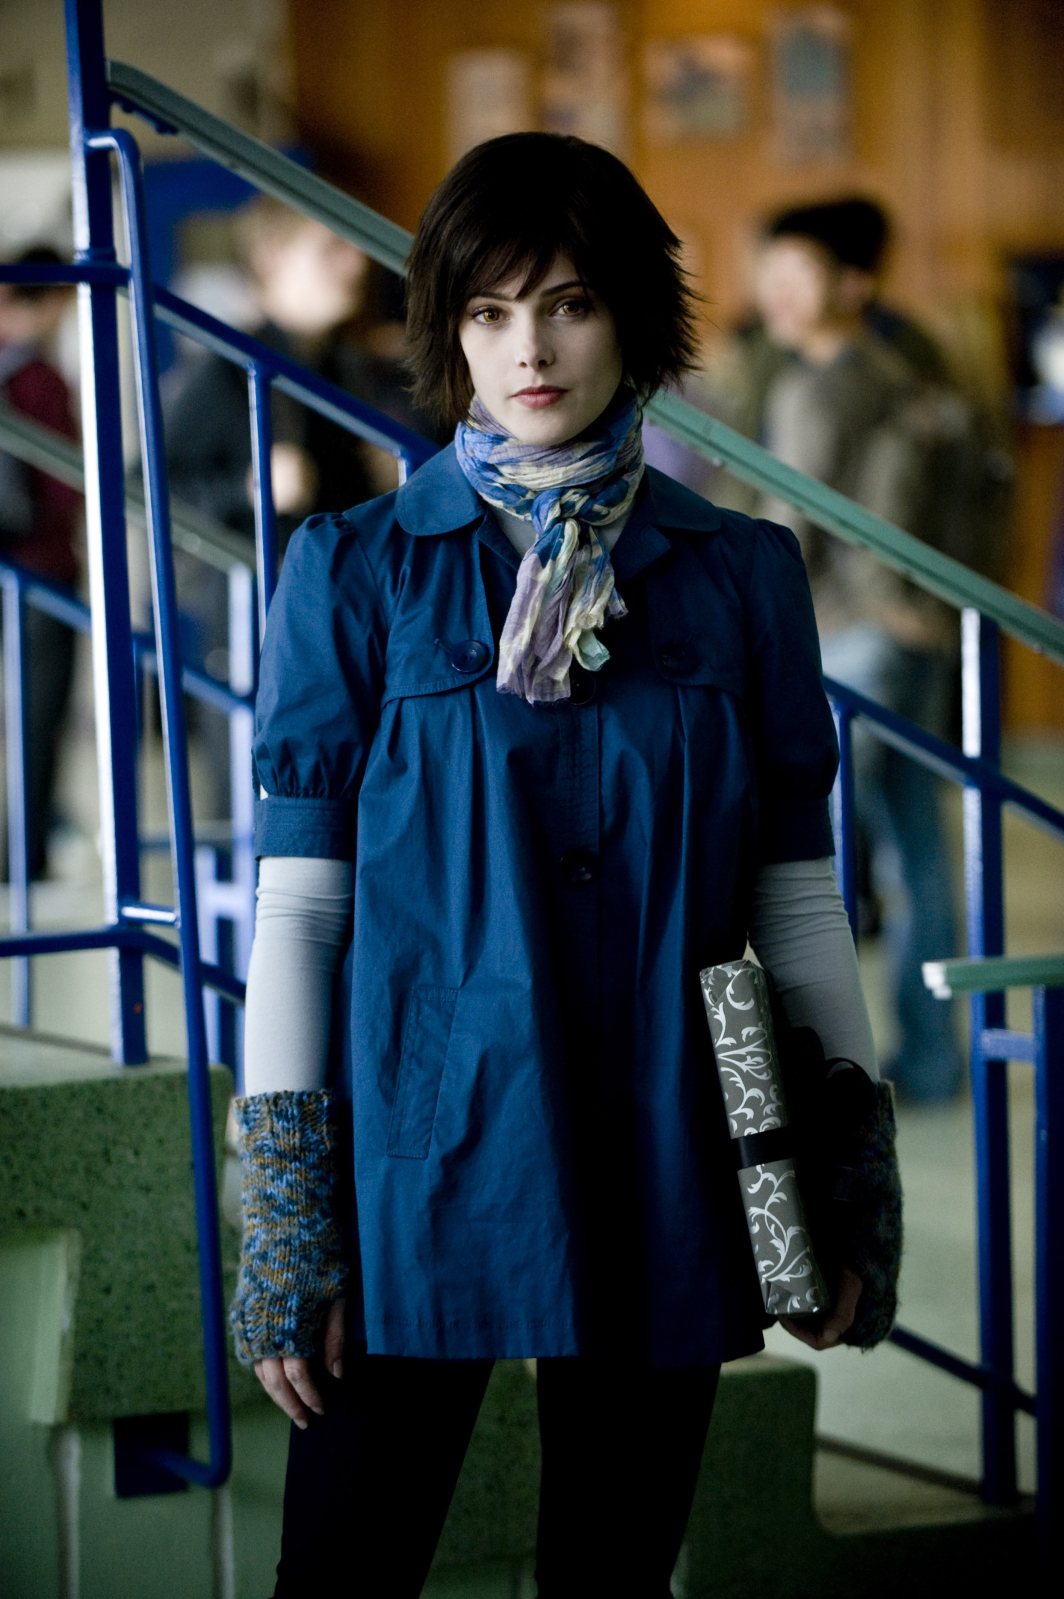 Alice Cullen Hair in Eclipse http://vampalicecullen.blogspot.com/